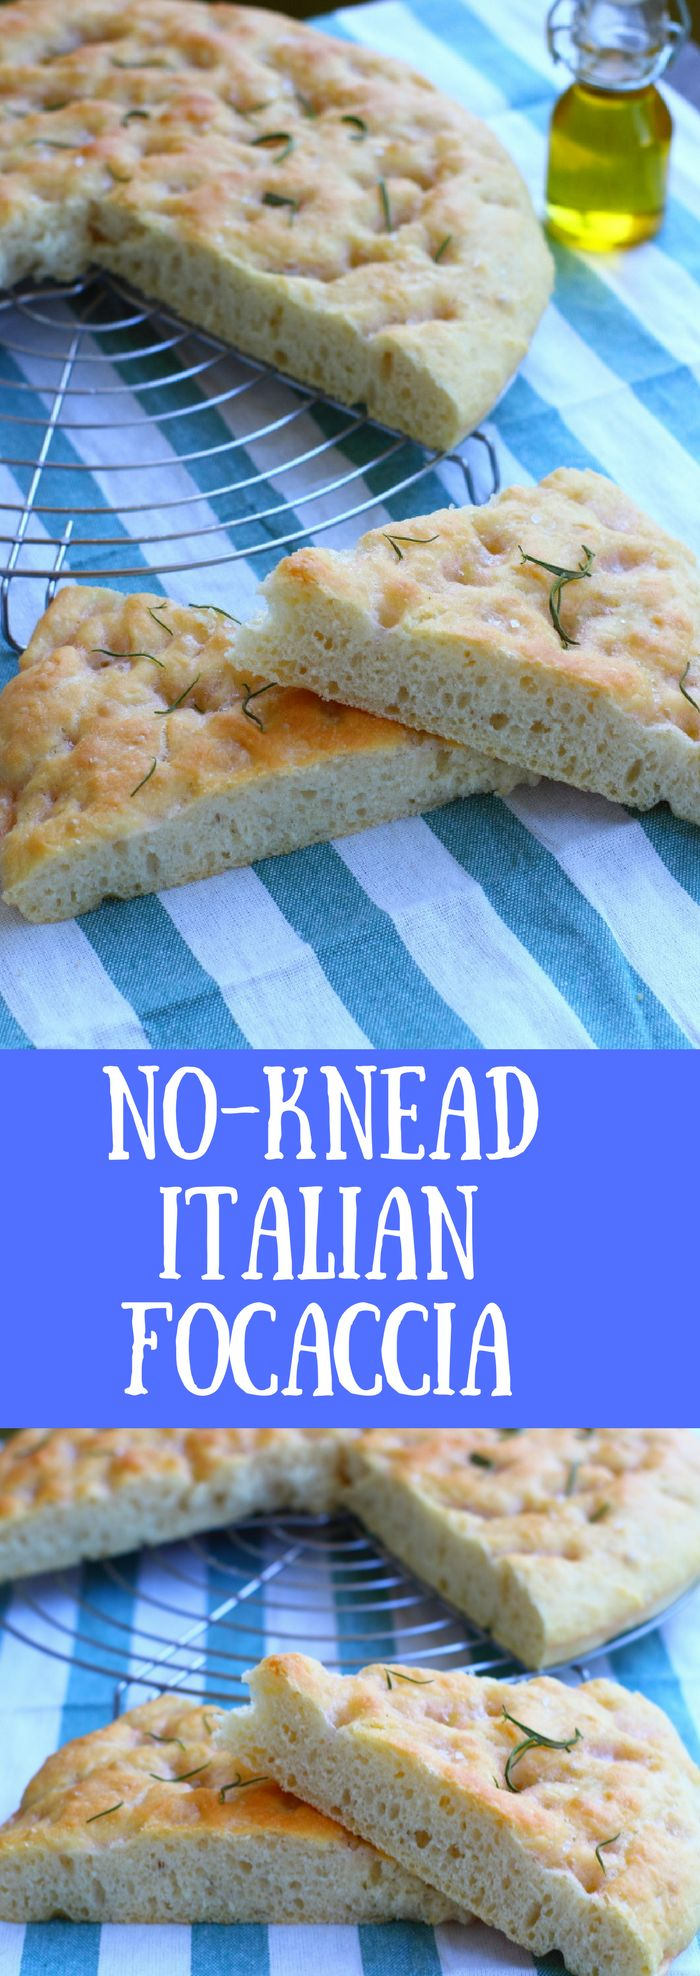 This focaccia follows an easy, fast procedure, it takes less than 2 hours in total! It seems too good to be true, but you'll be amazed by the great result.